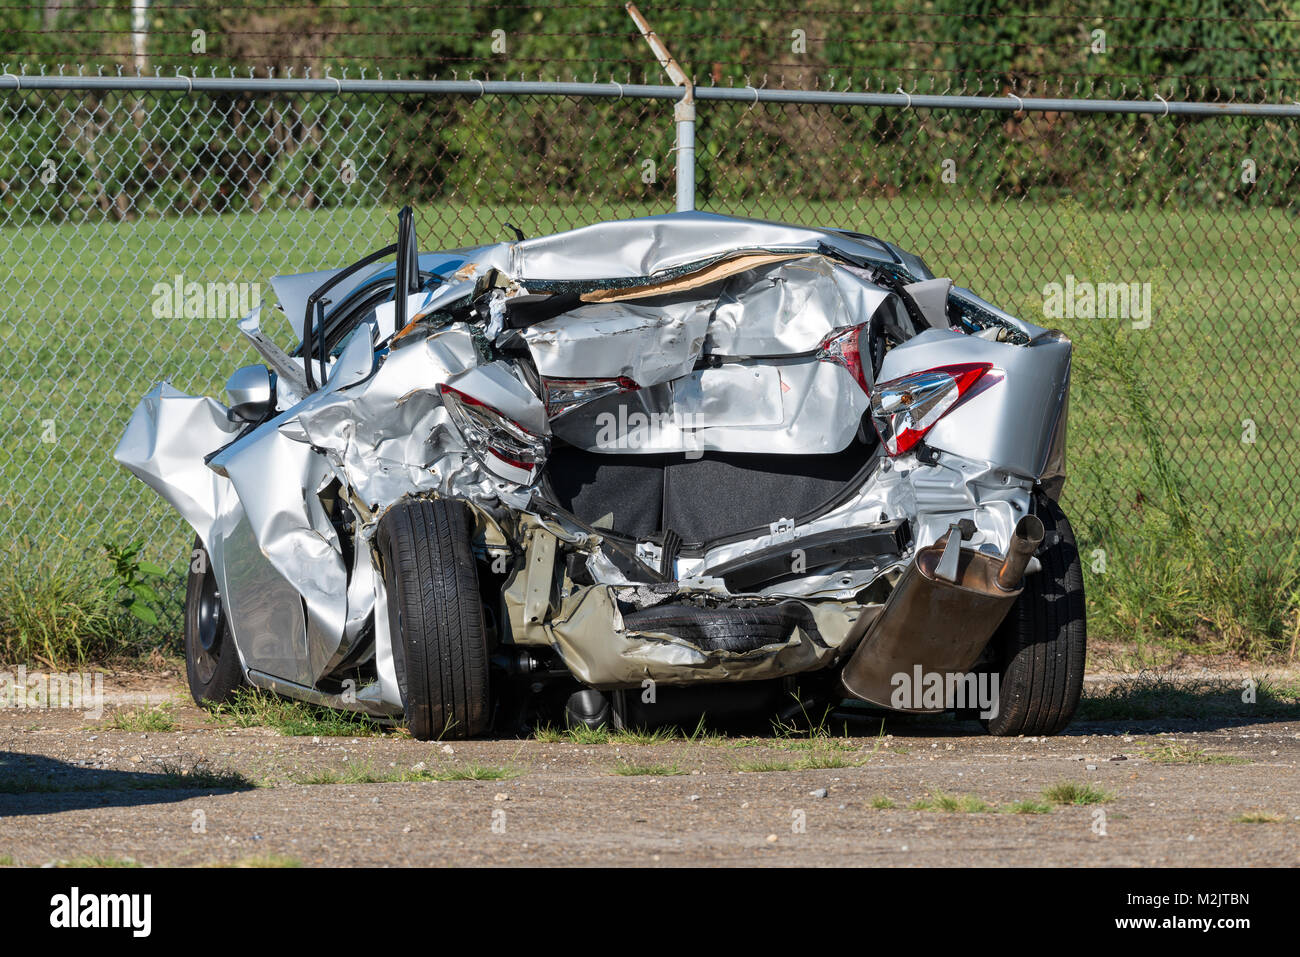 Horizontal shot of a car demolished by a wreck. - Stock Image